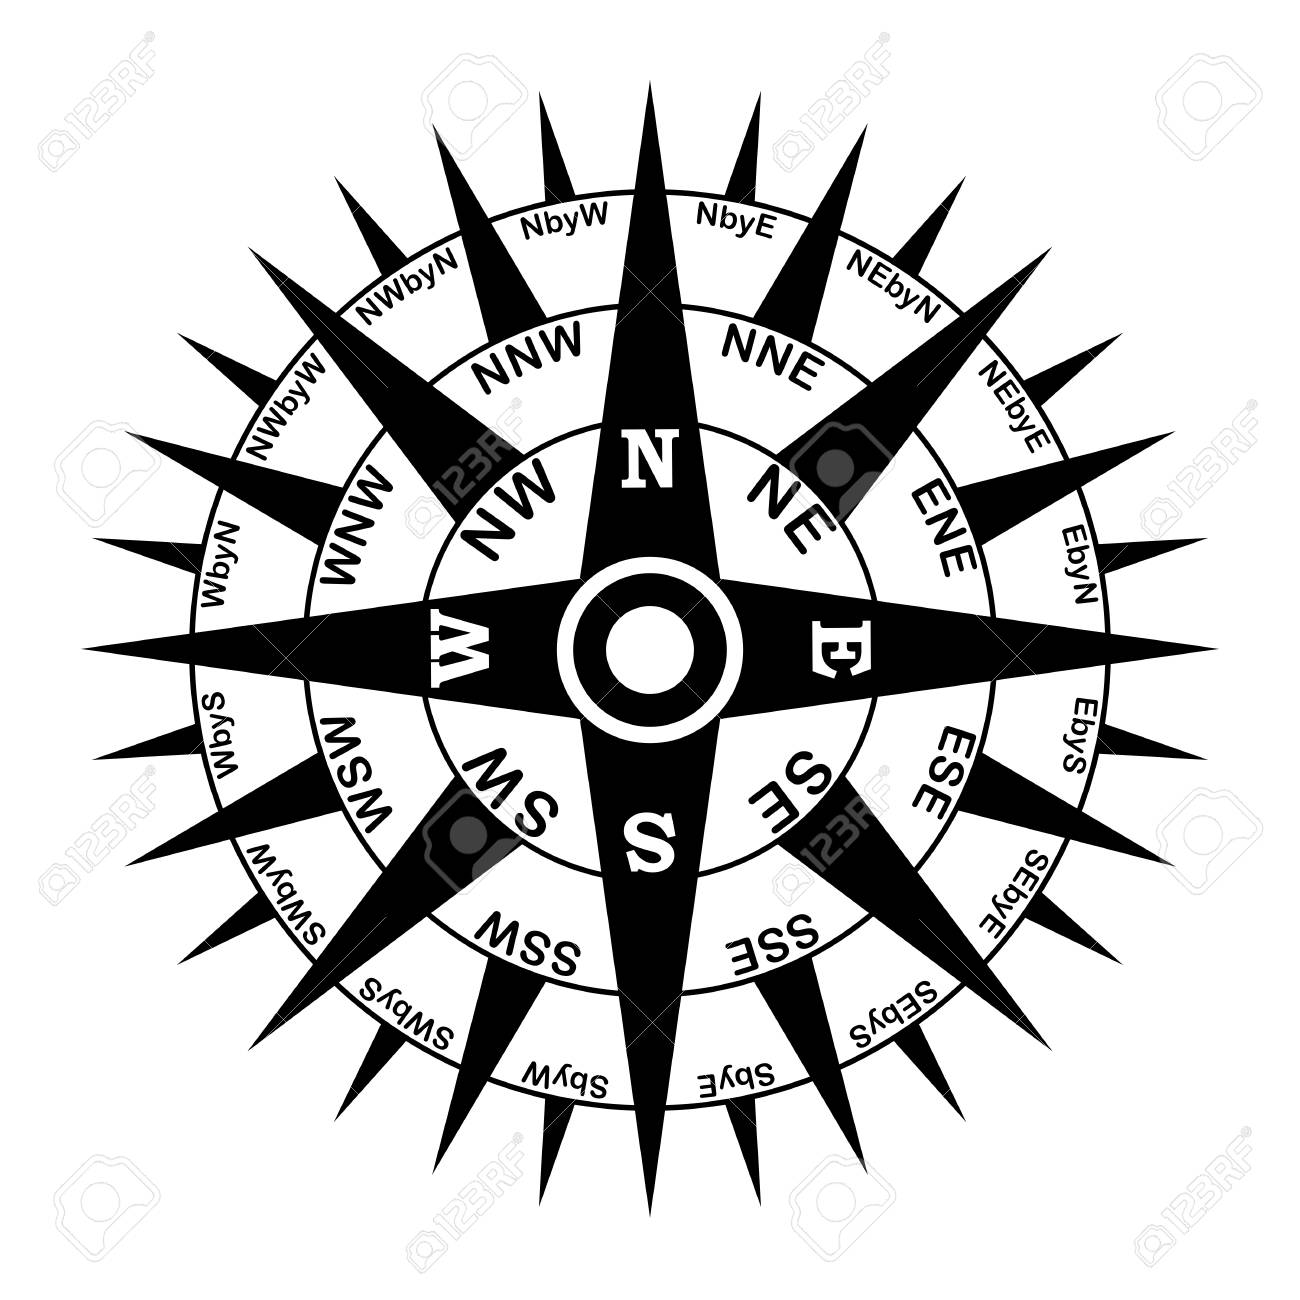 Compass Rose Compass Rose Marine Navigation Isolated Background